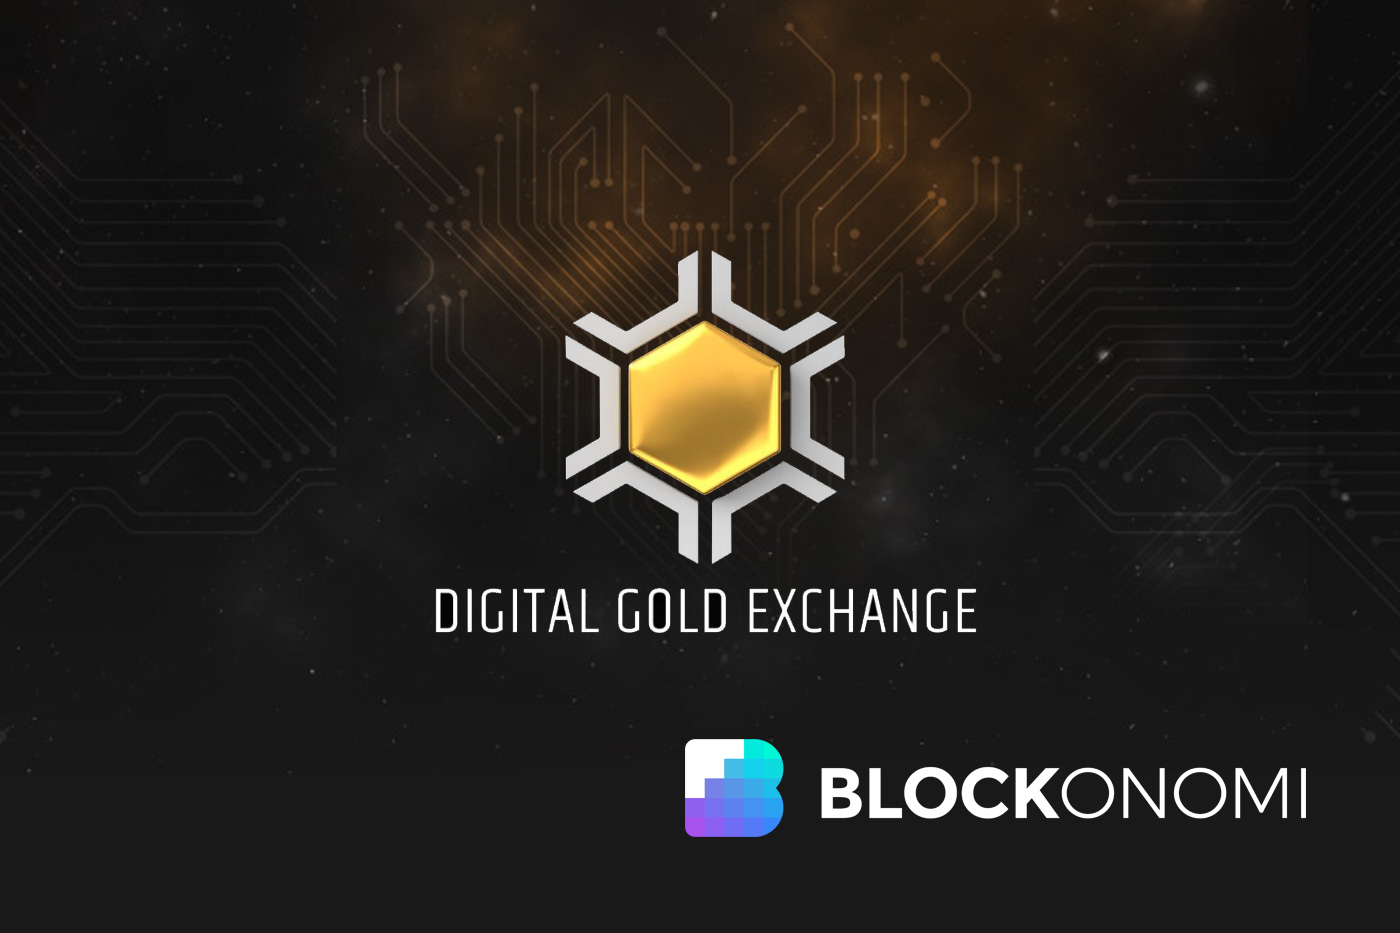 digital gold cryptocurrency